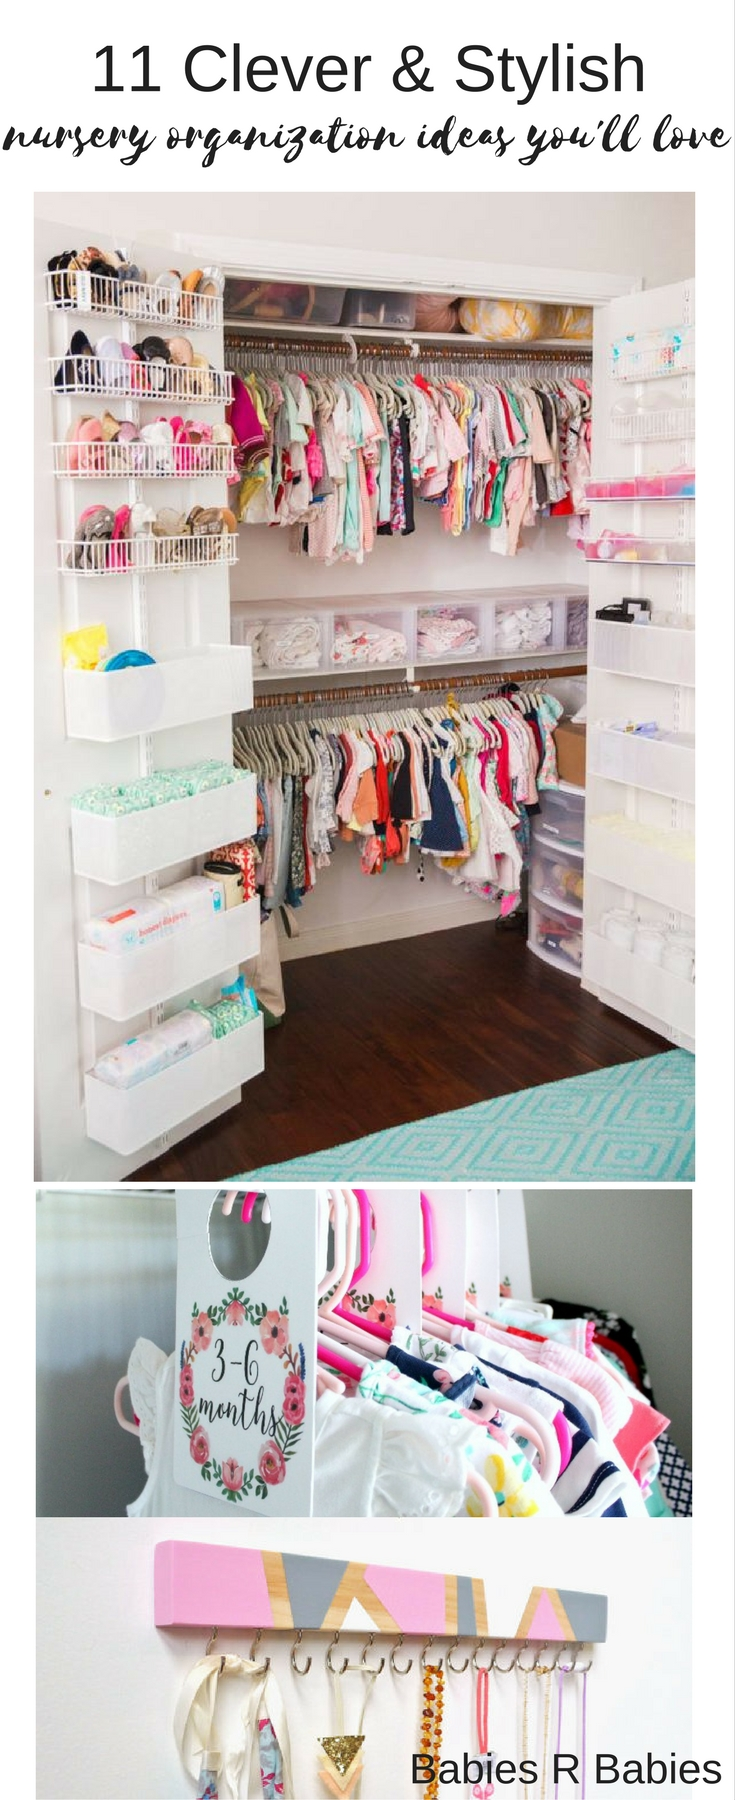 nursery organization ideas you'll love